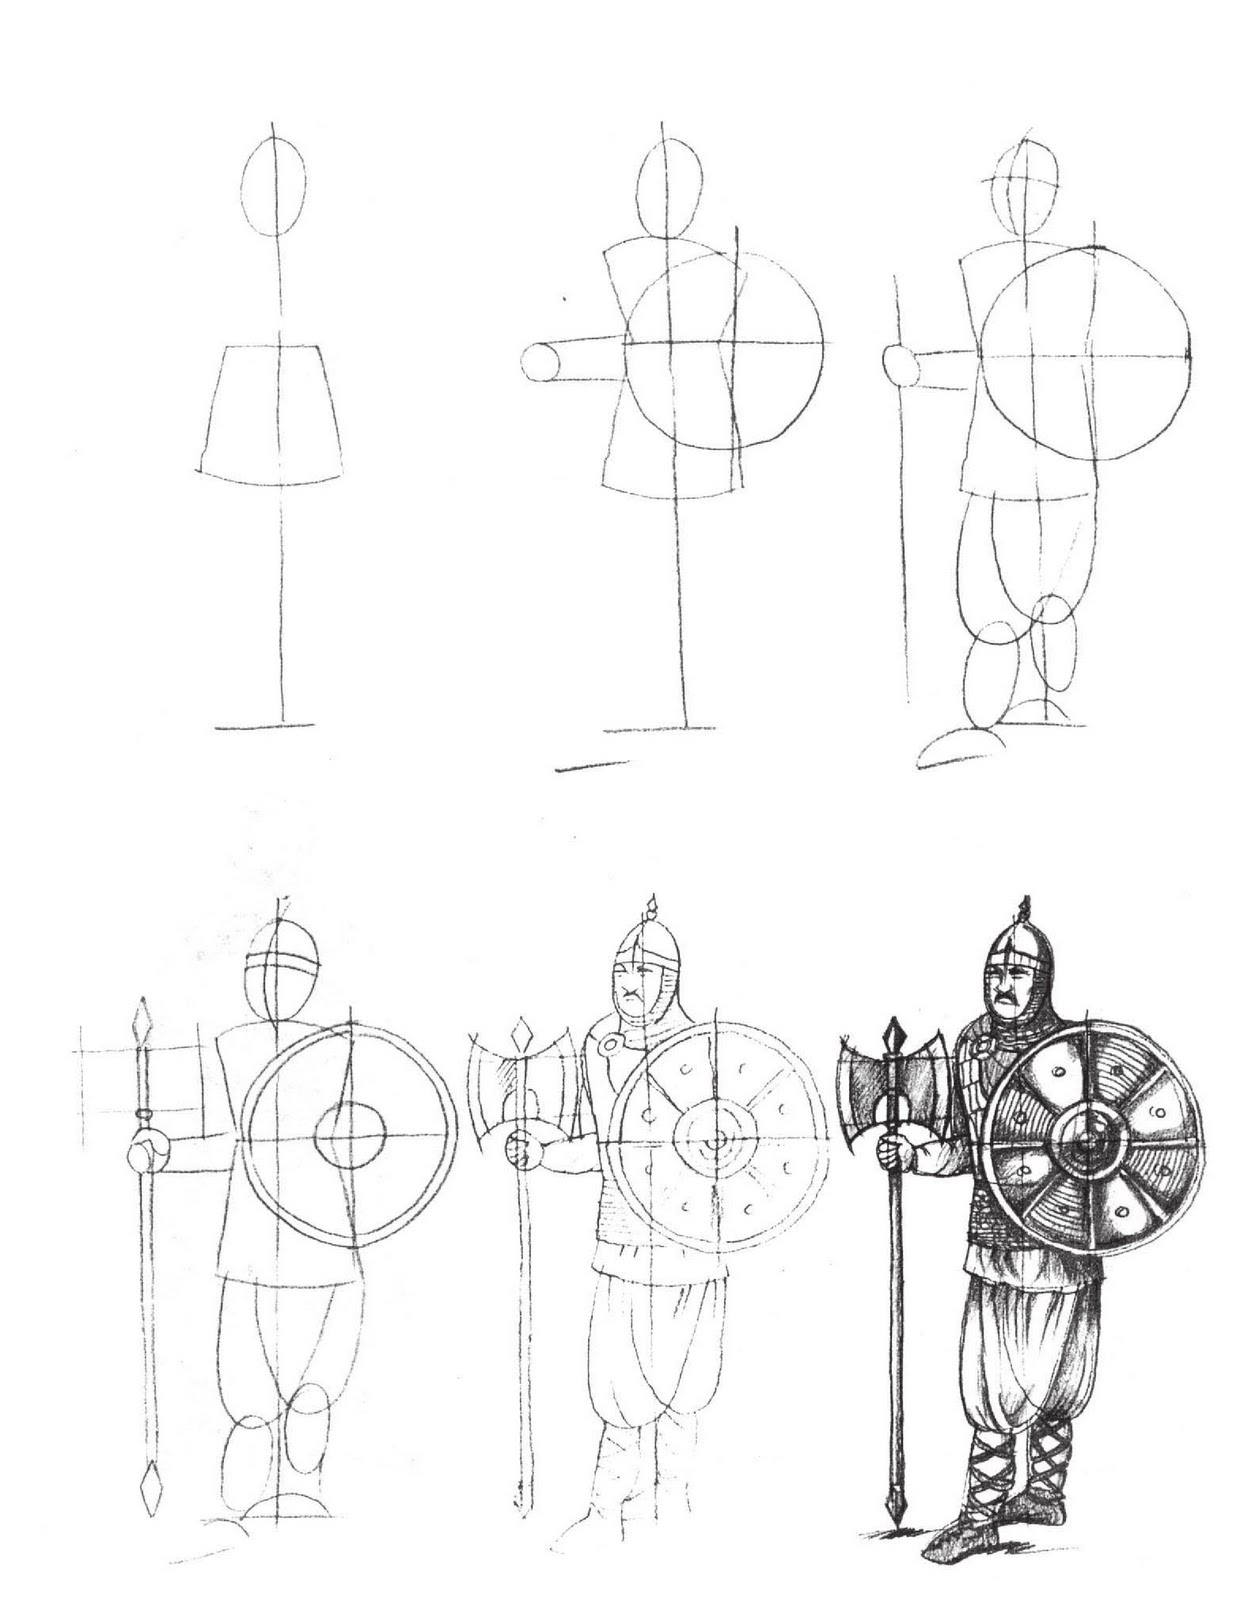 how to draw a knight helmet step by step pin on coneptual ap helmet a draw by knight step step how to